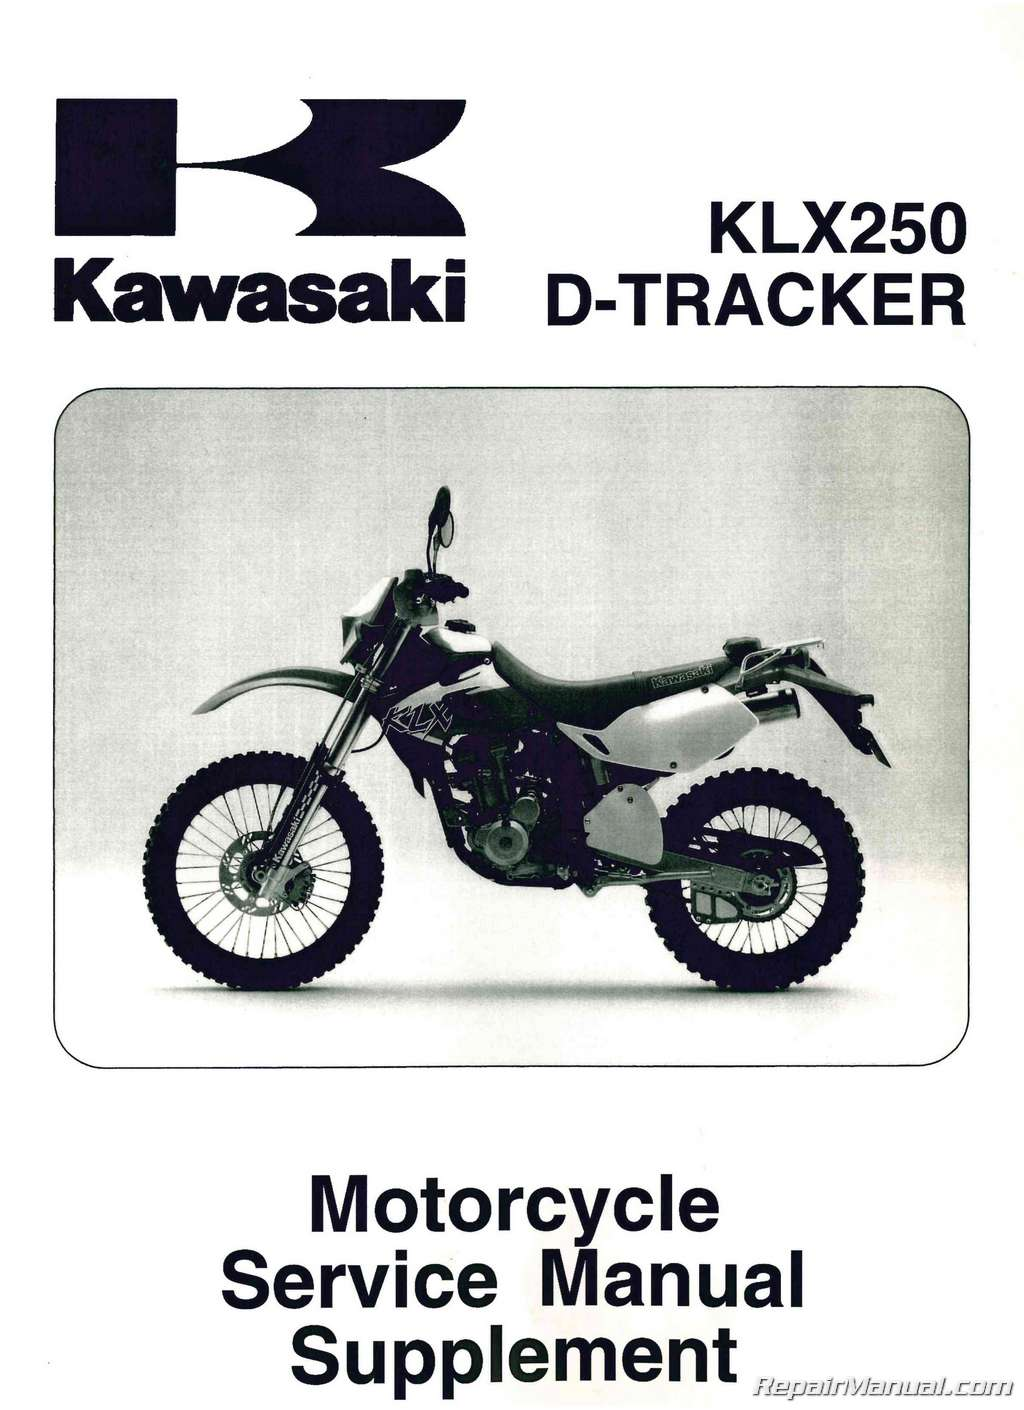 1999 2006 Kawasaki Klx250 Service Manual Supplement